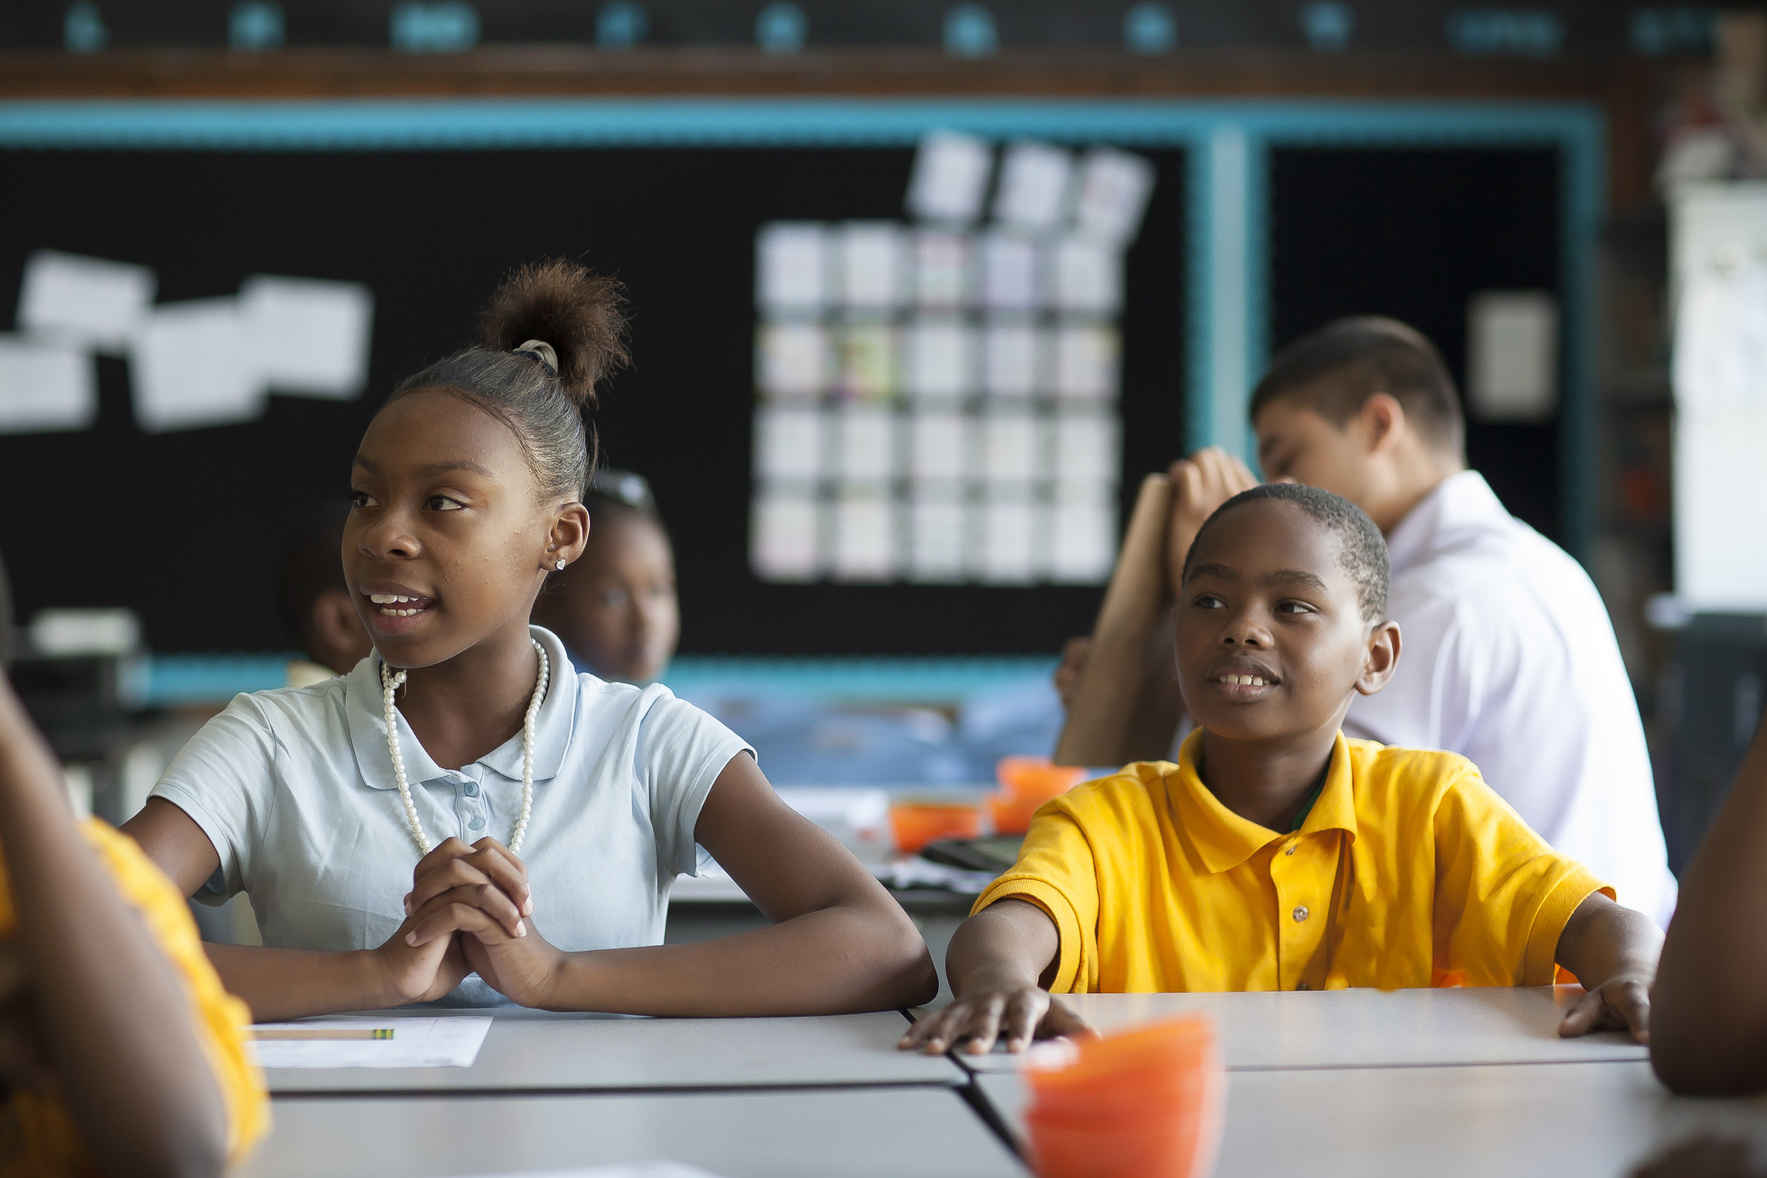 Your gift delivers on the promise of educational equity with excellence. image